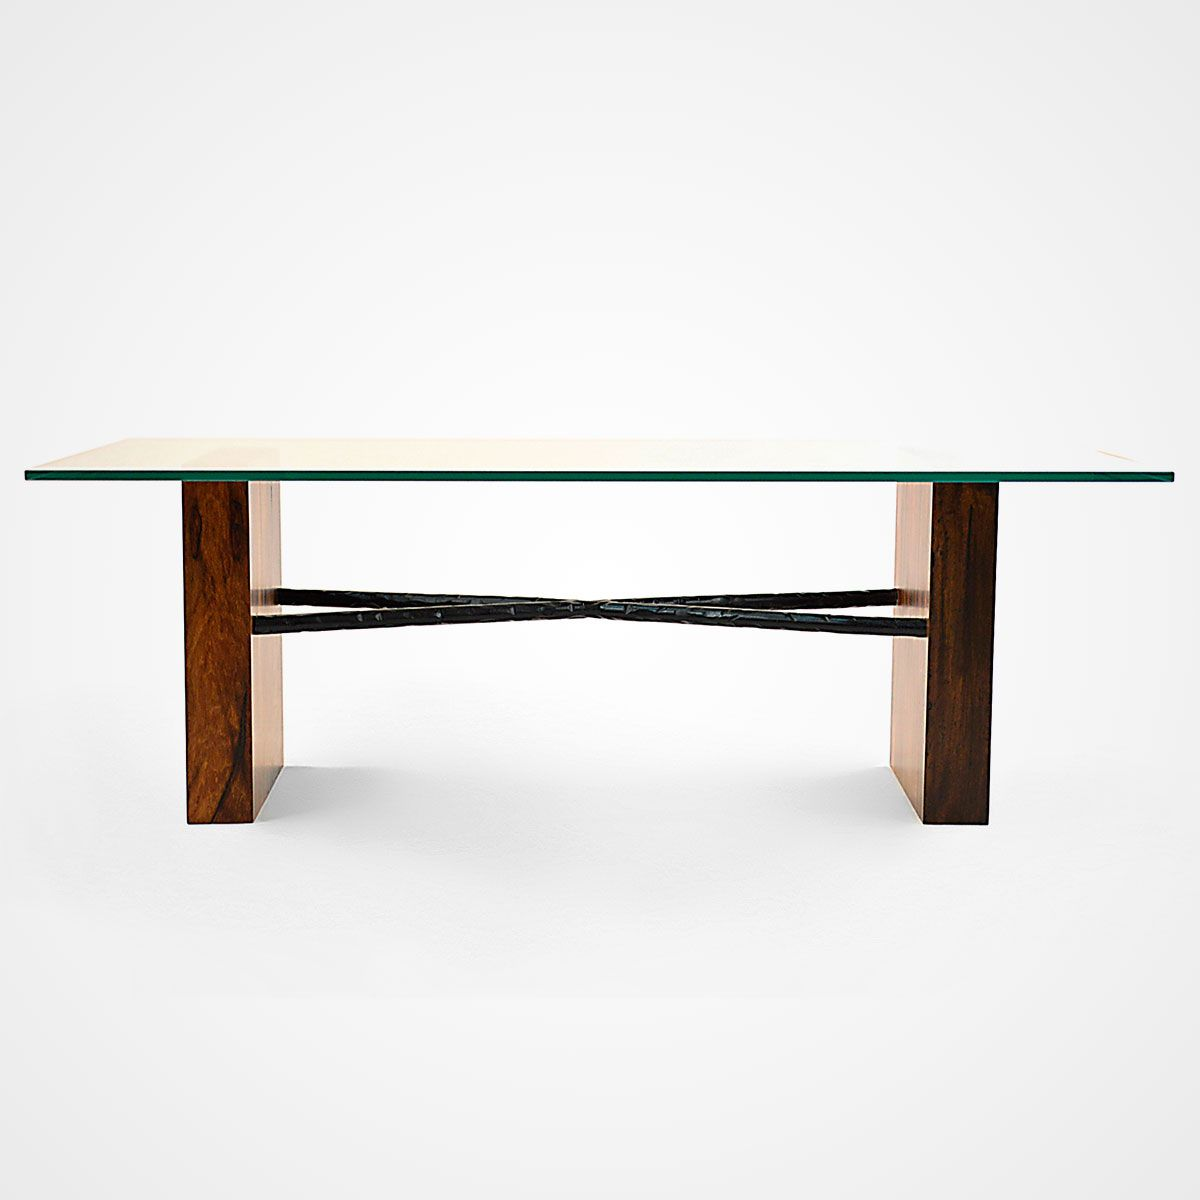 Mindful Living Solid Wood Coffee Table with Chevron Pattern and Midcentury Modern Legs